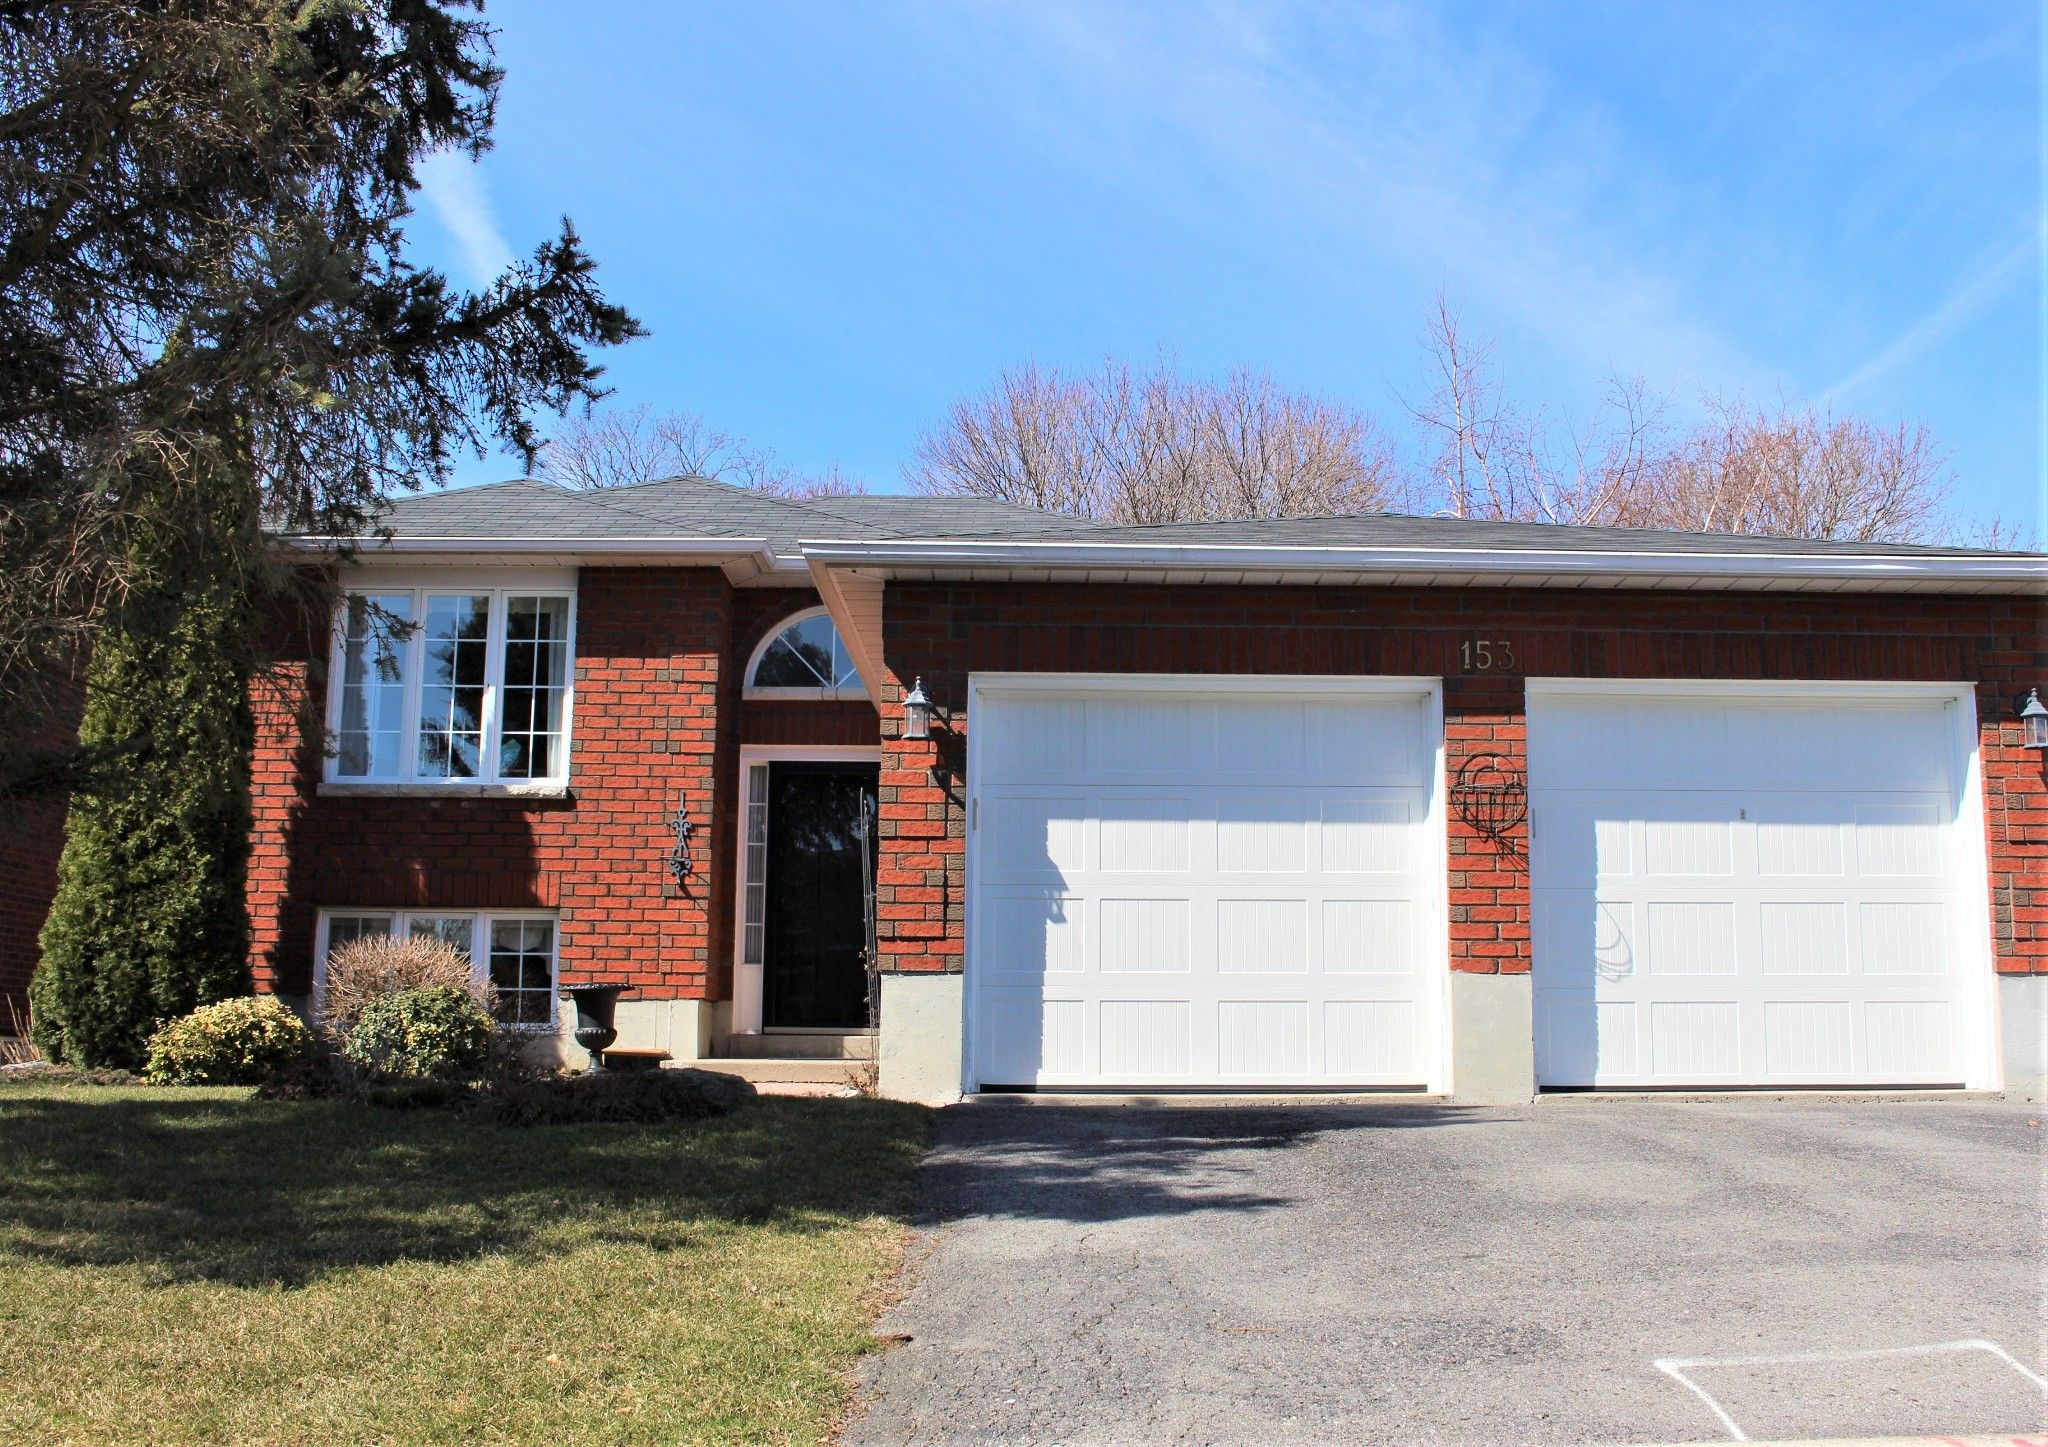 Main Photo: 153 Carroll Crescent in Cobourg: House for sale : MLS®# 188725